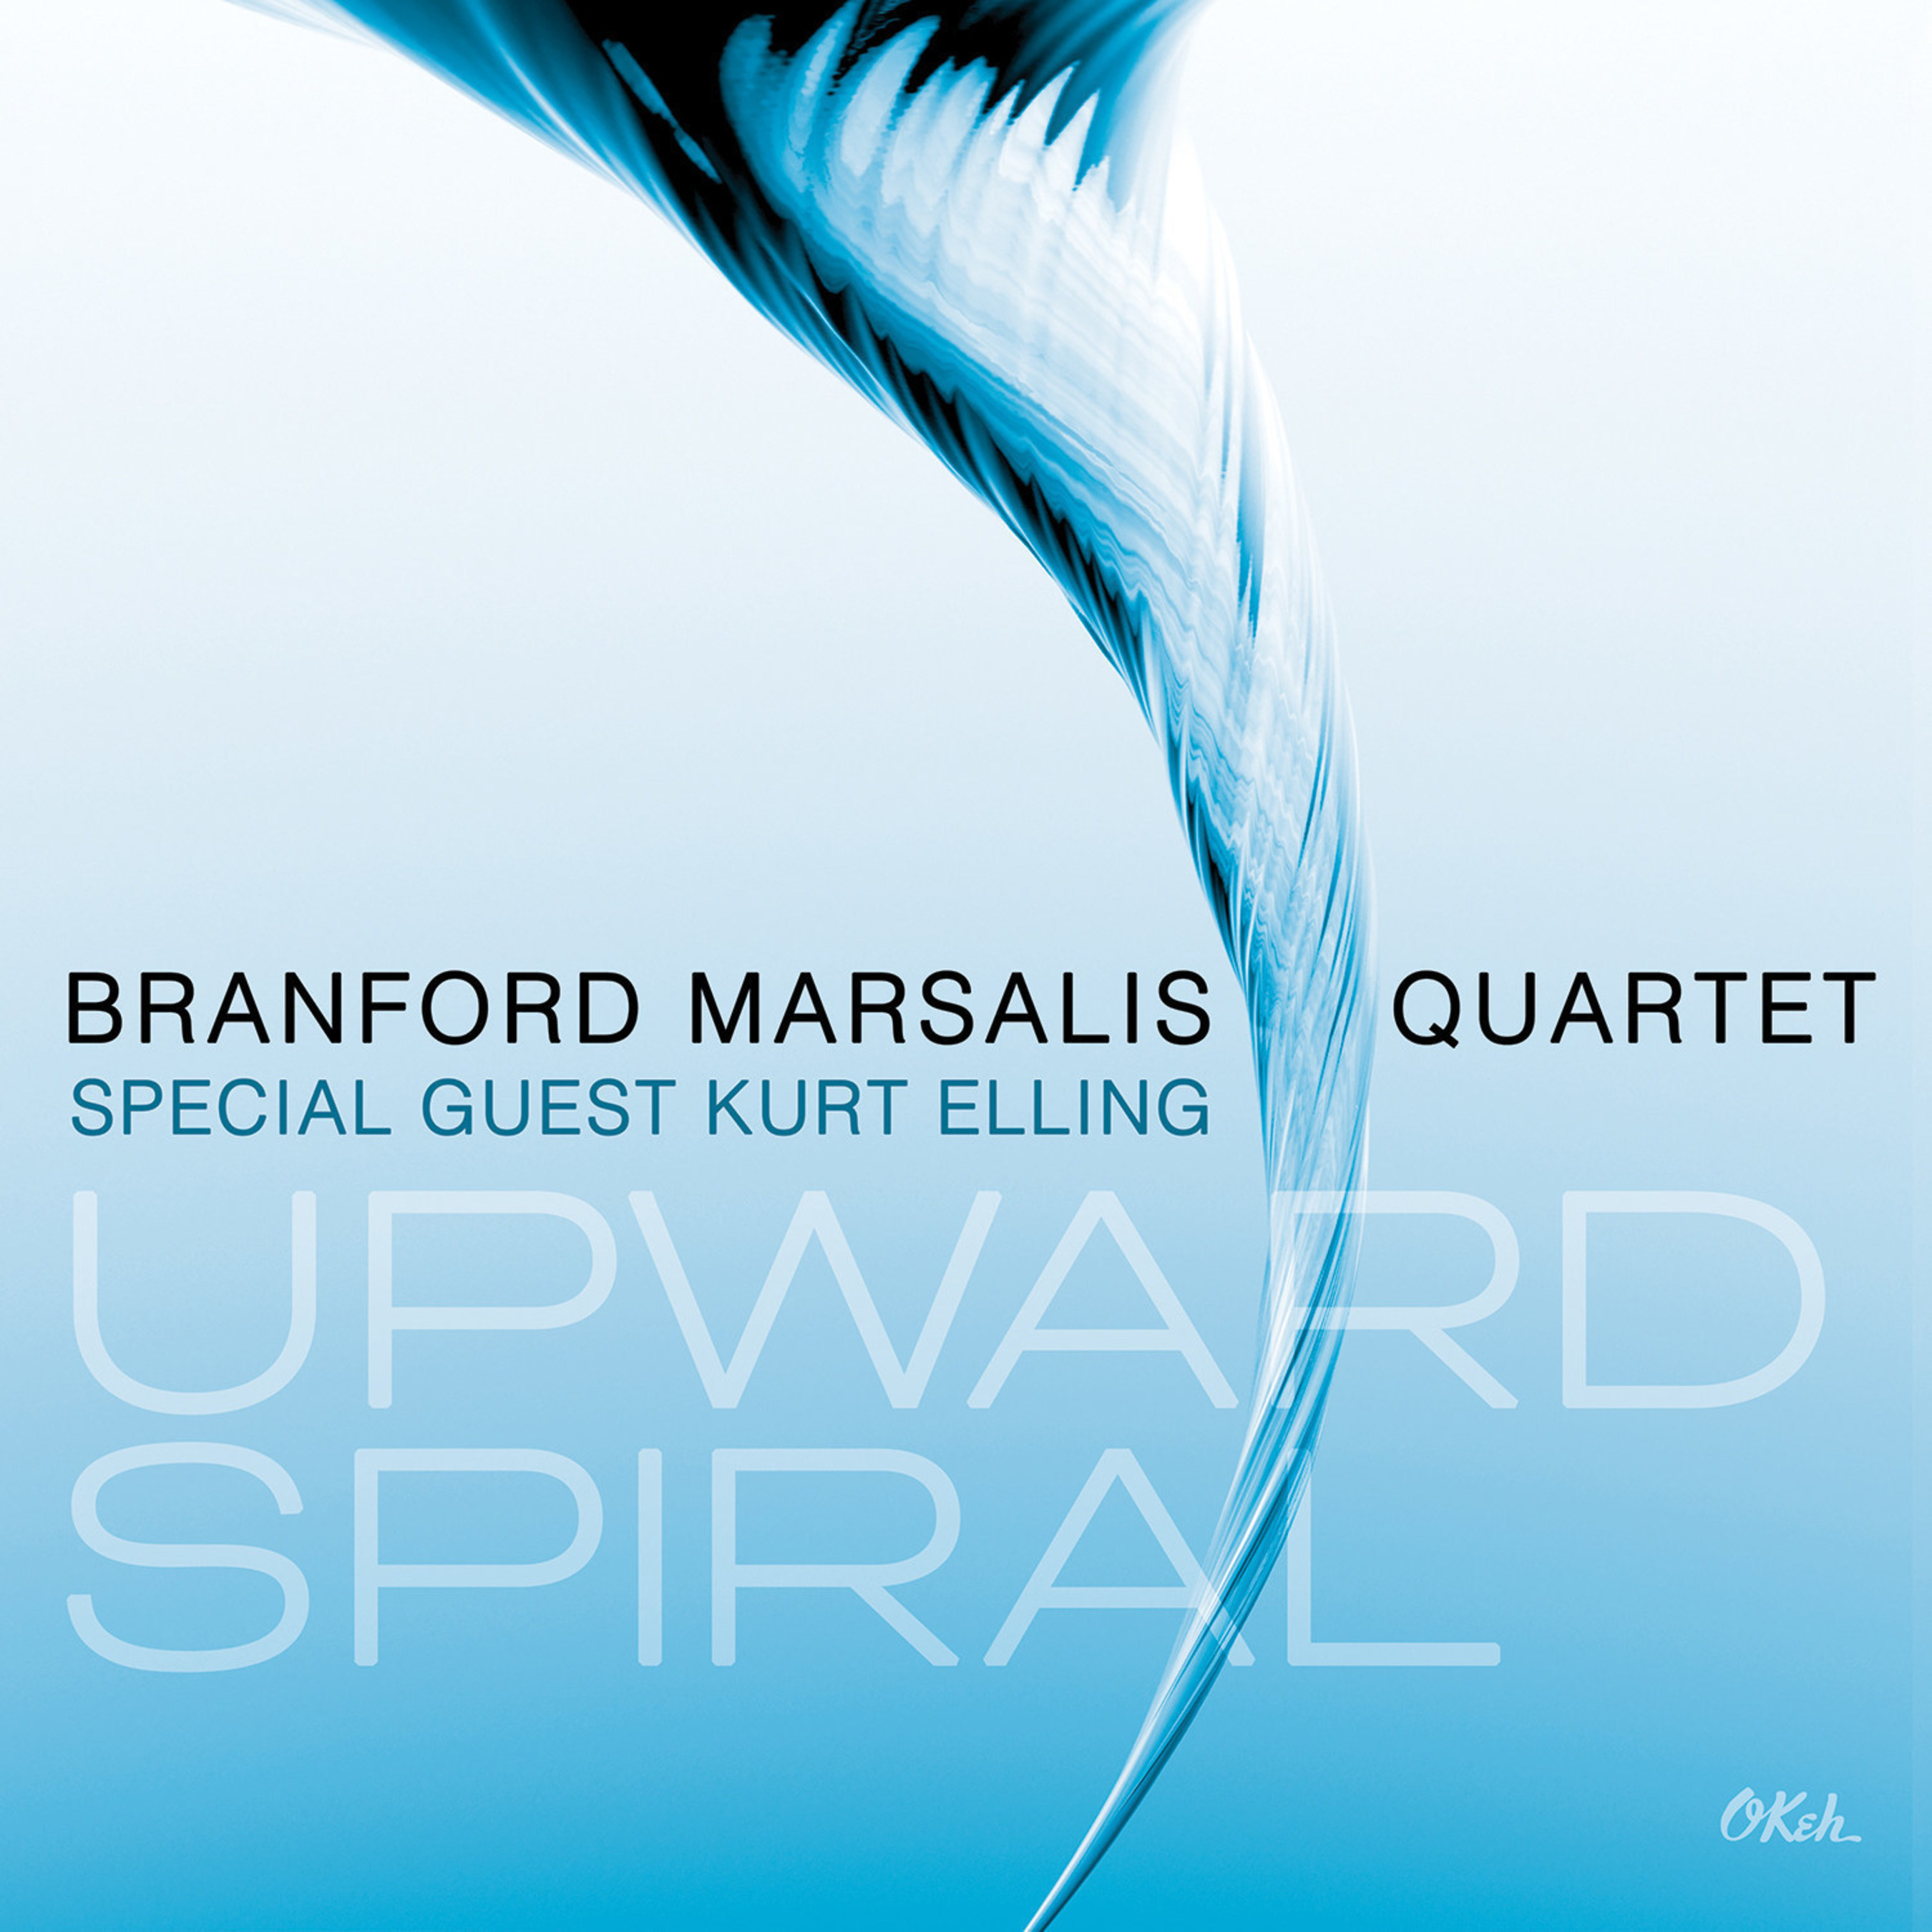 The Branford Marsalis Quartet With Special Guest Kurt Elling Release Upward Spiral Available June 10